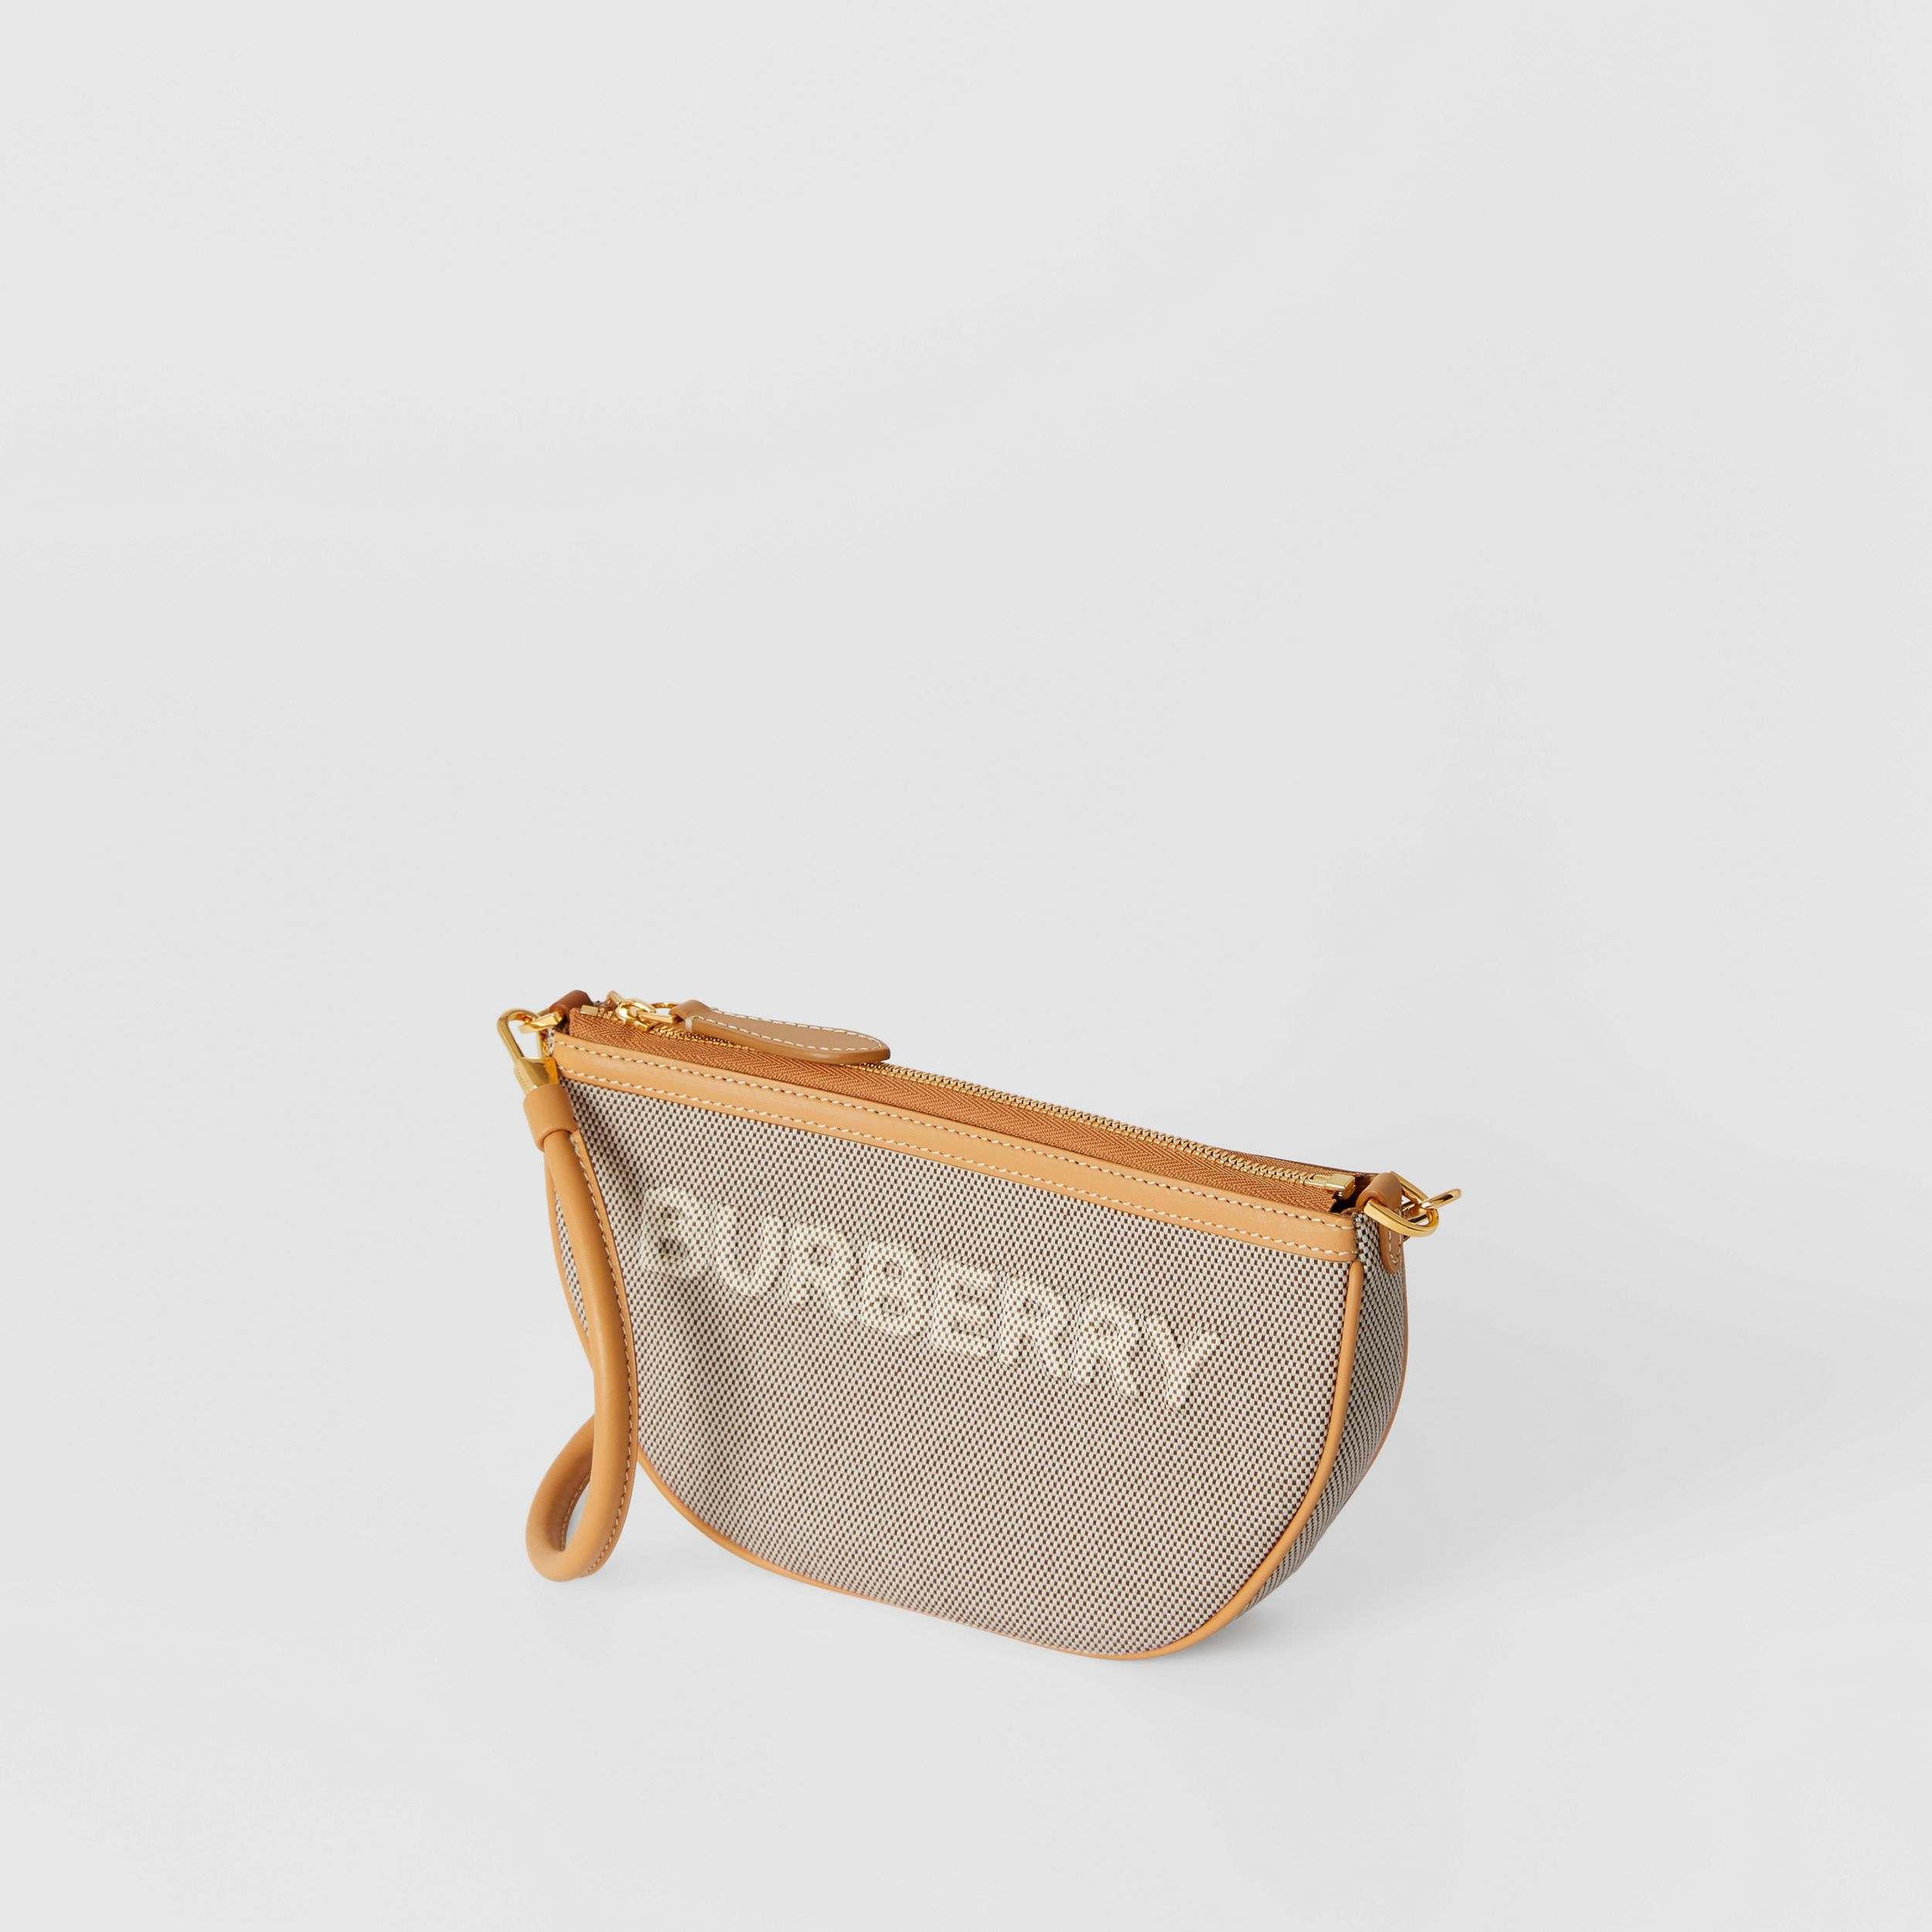 Embossed Logo Canvas and Leather Olympia Pouch in Soft Fawn/warm Sand - Women | Burberry Singapore - 4